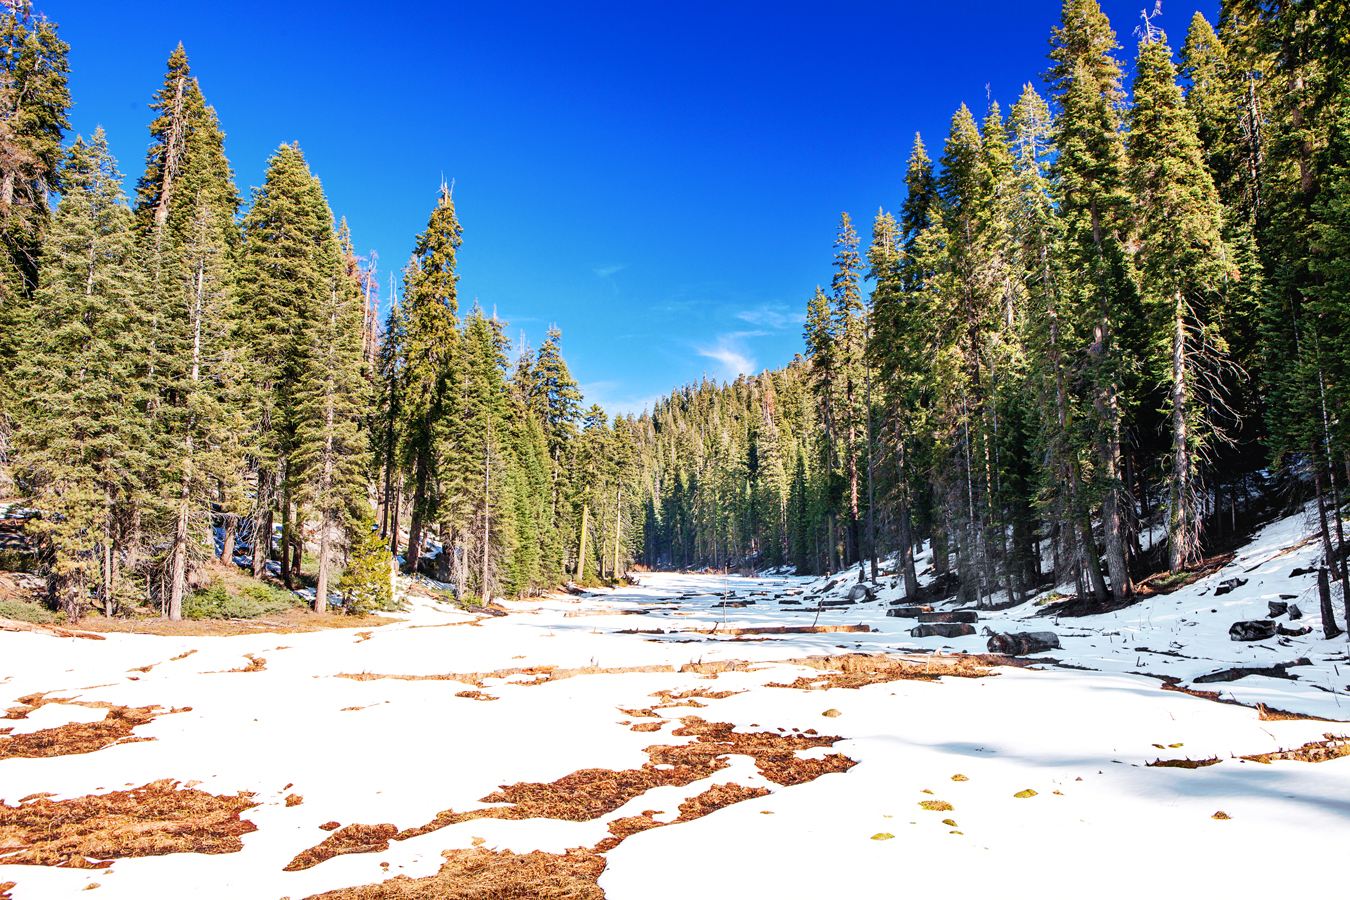 Winter in Sequoia & Kings Canyon National Parks